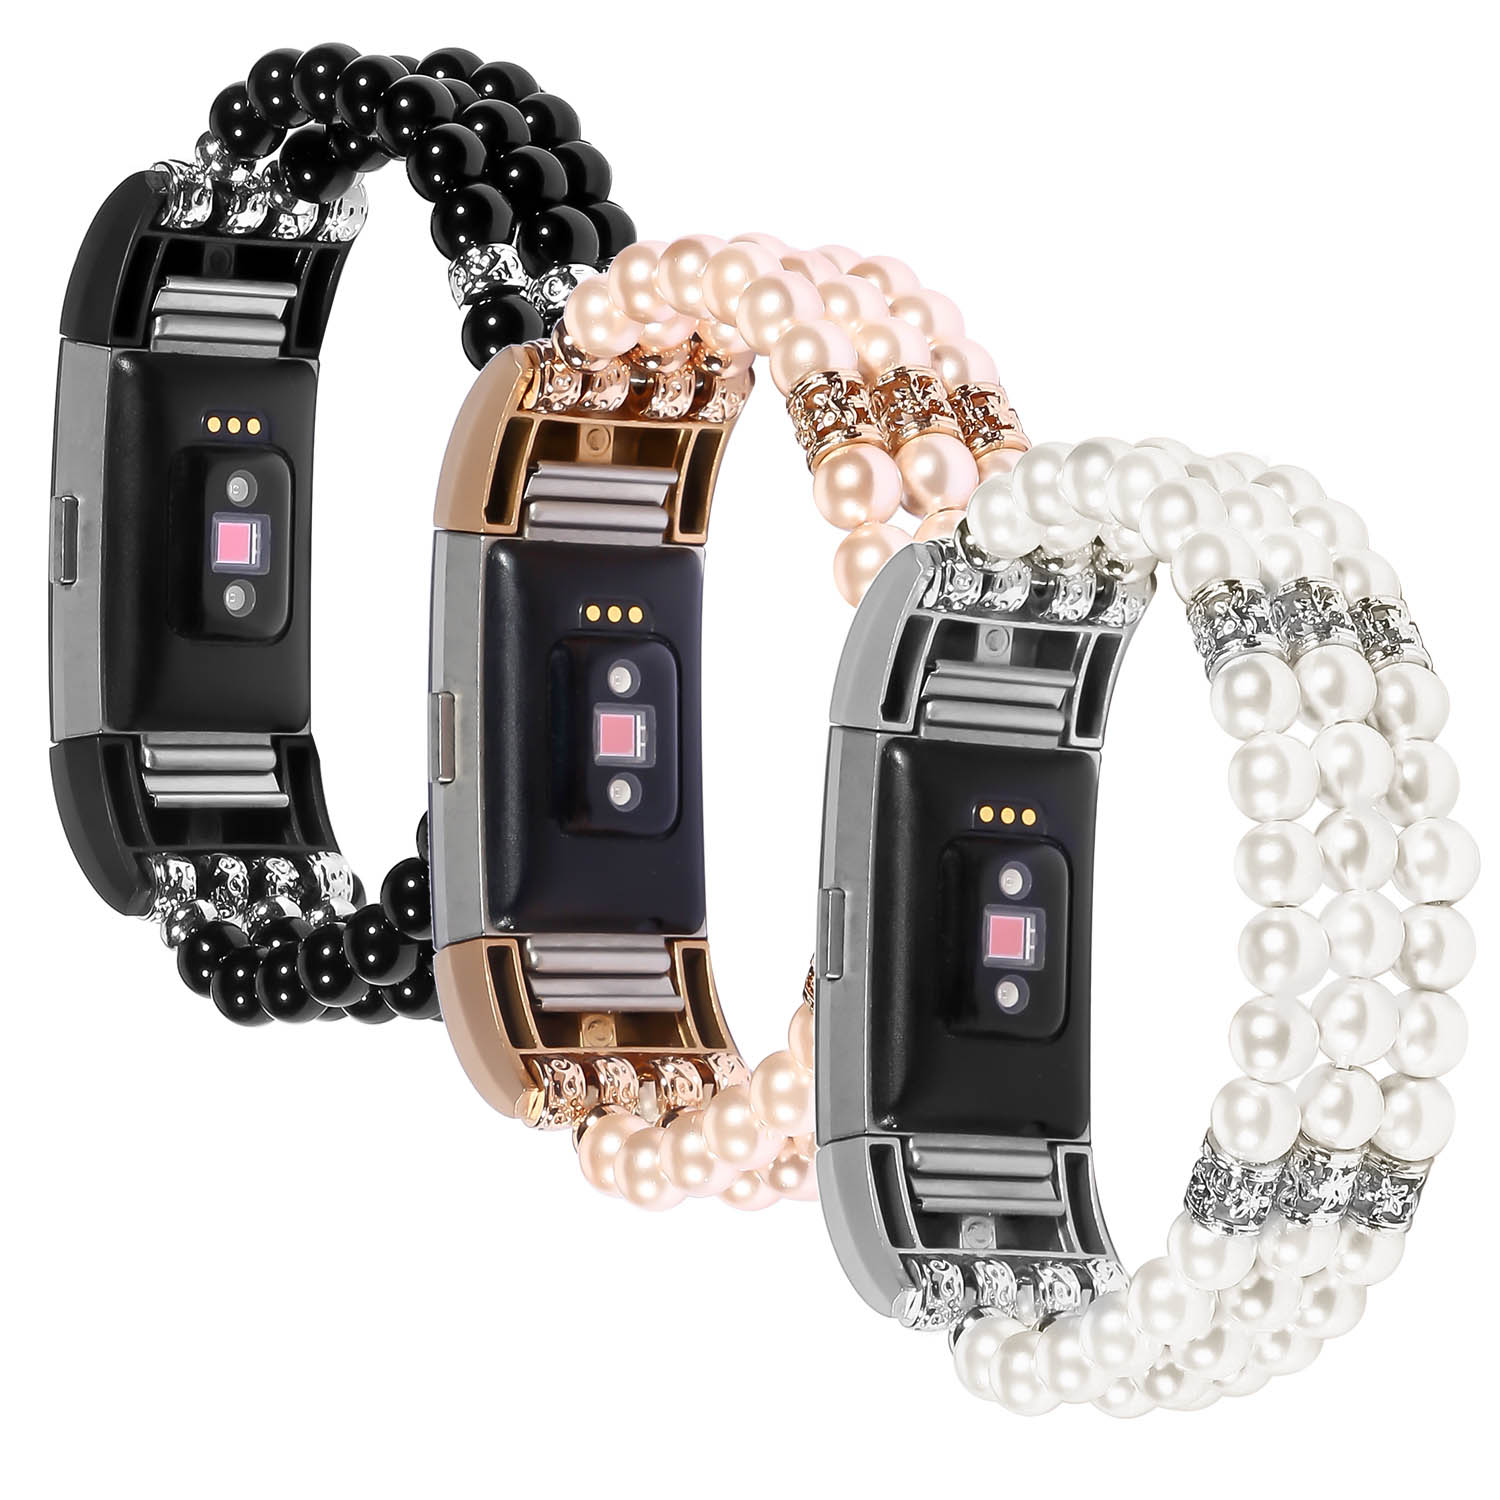 2018 New Jewel Pearl Stretch Watch Band for Fitbit Charge